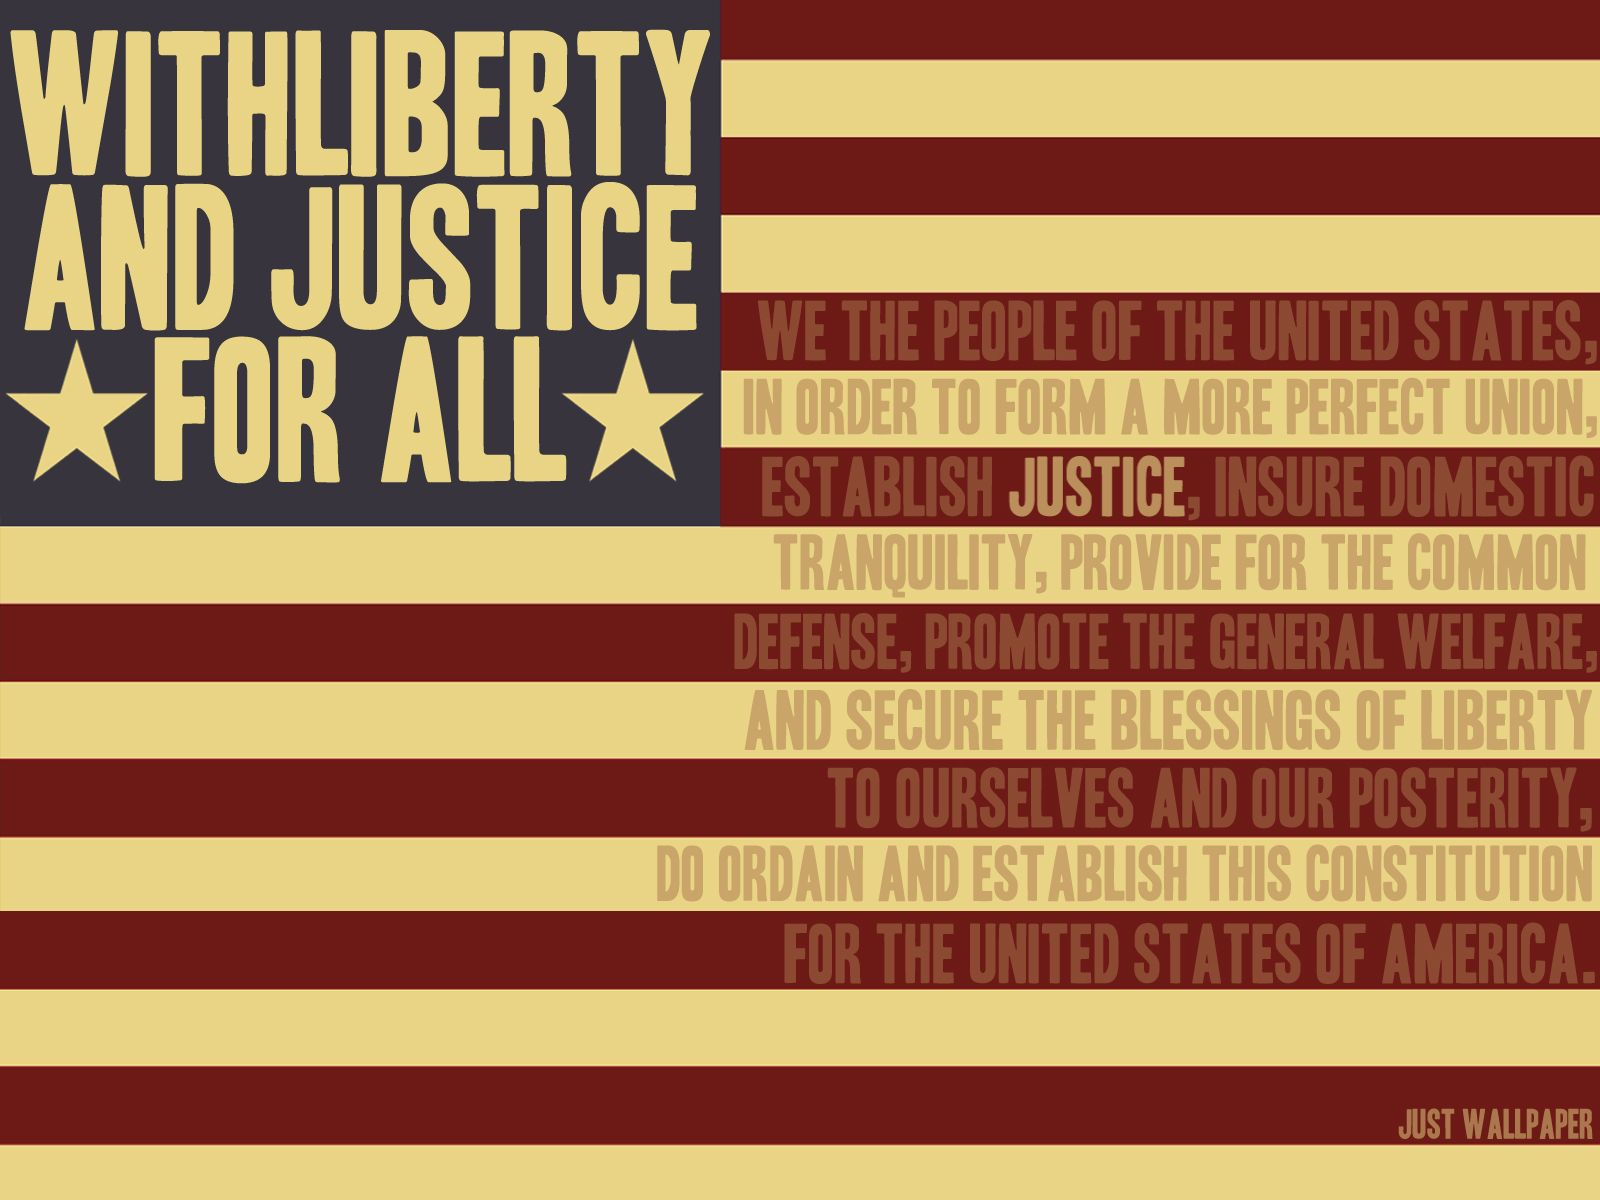 We The People Of The United States In Order To Form A